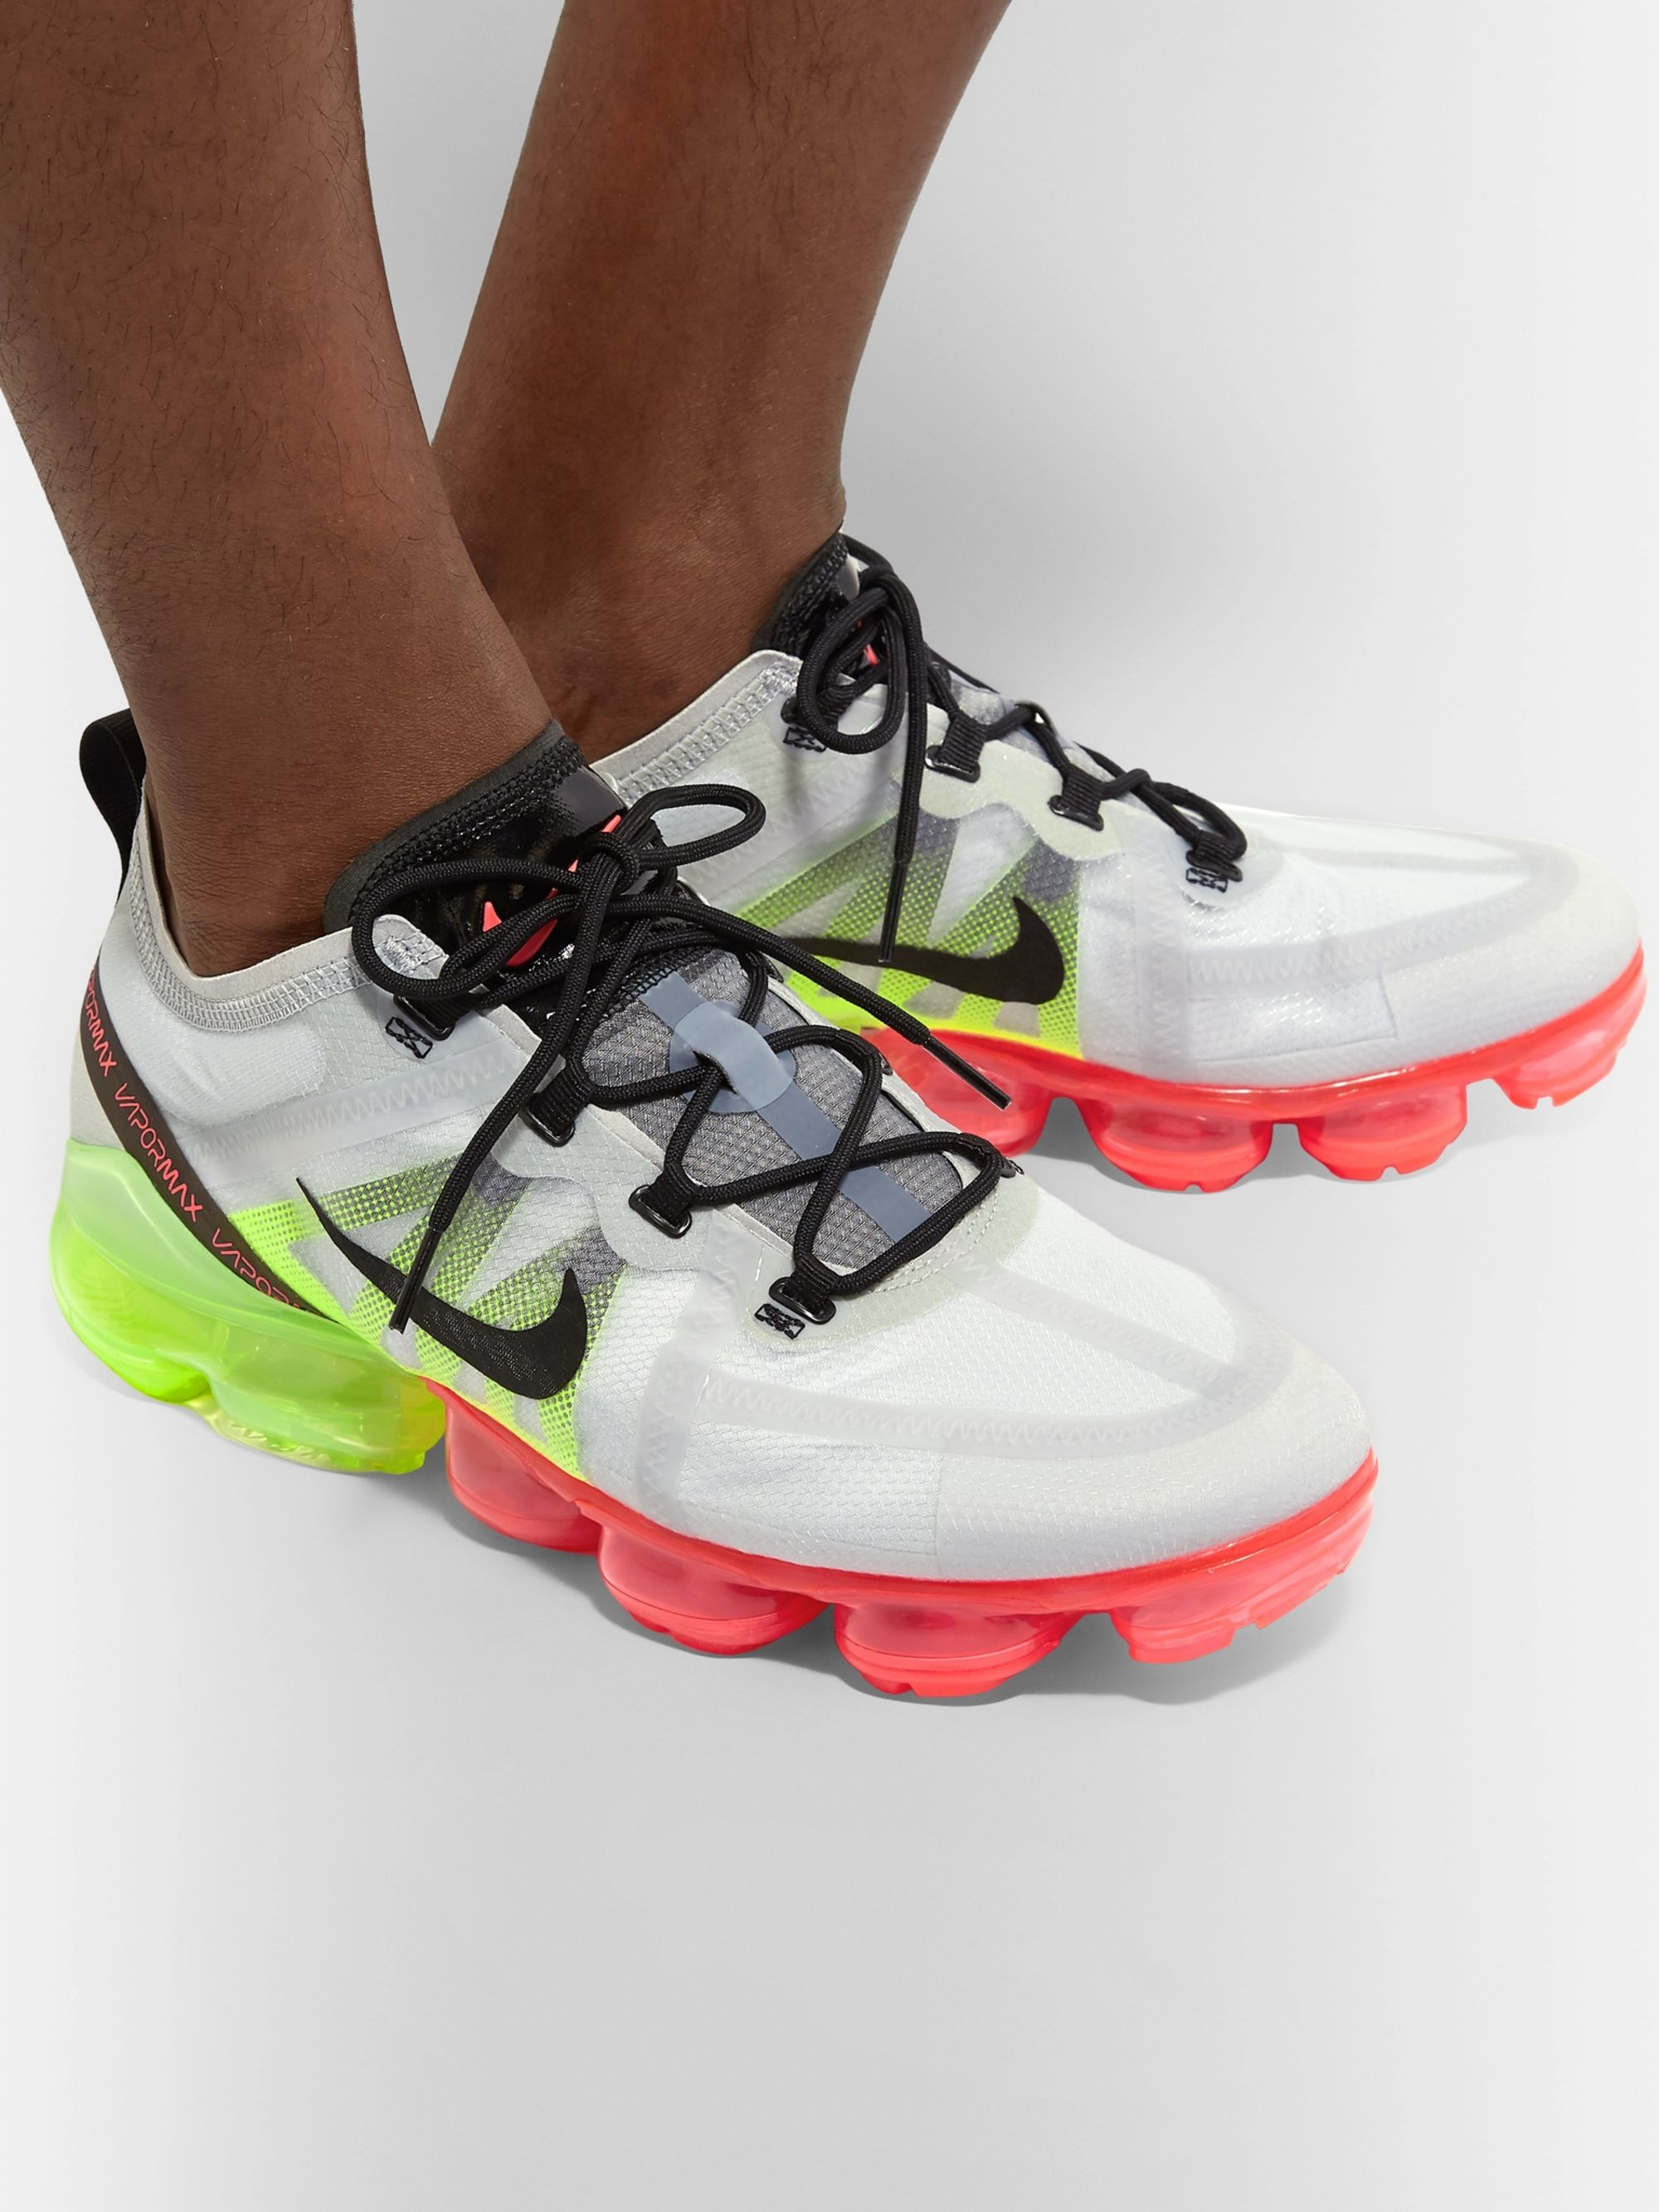 separation shoes 372c7 83299 Air VaporMax 2019 Ripstop Running Sneakers